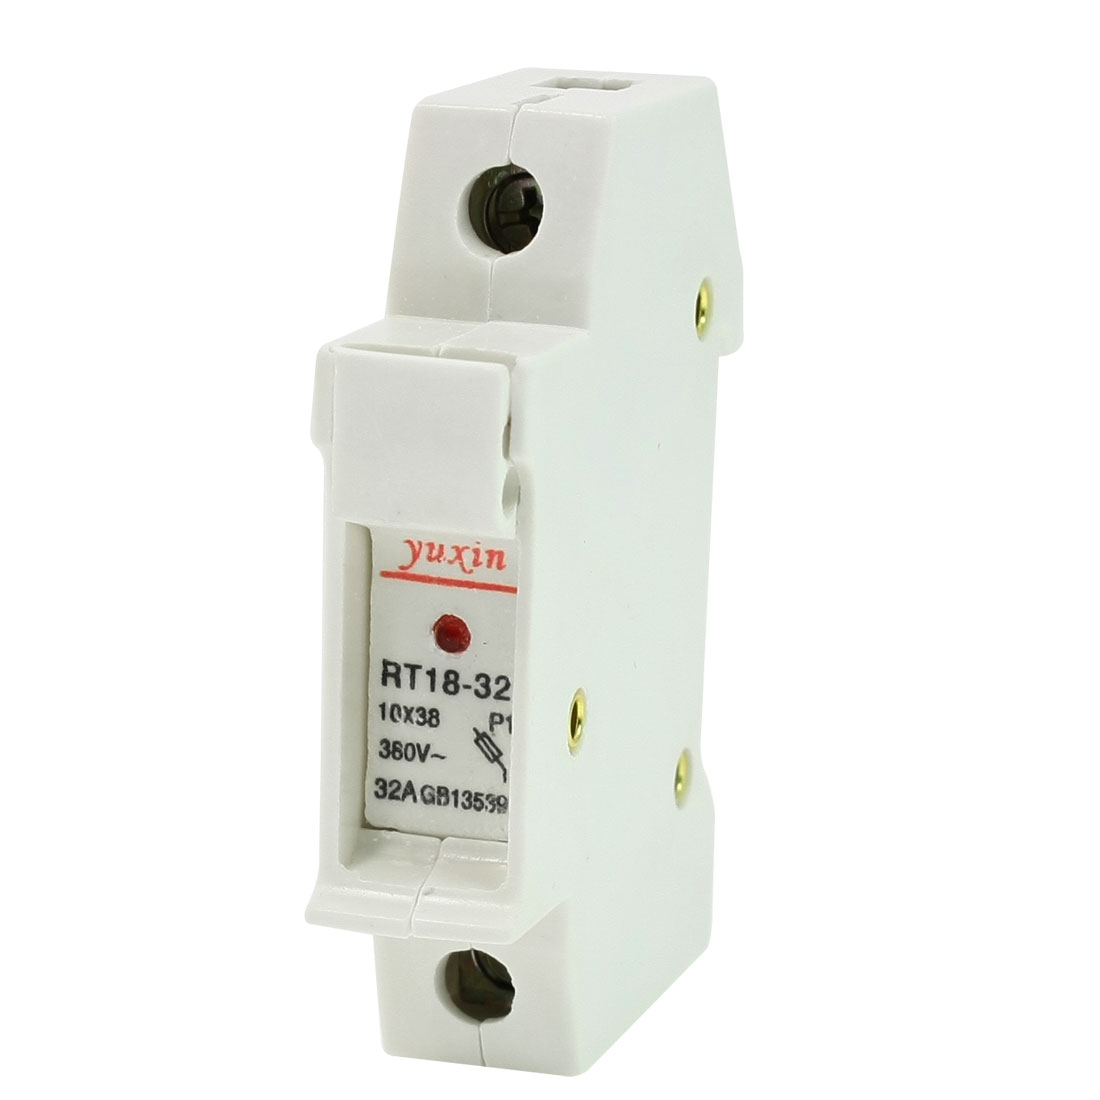 RT18-32 AC 380VV 32A 1 Pole 1P 10x38mm Cylindrical Fuse Holder Socket